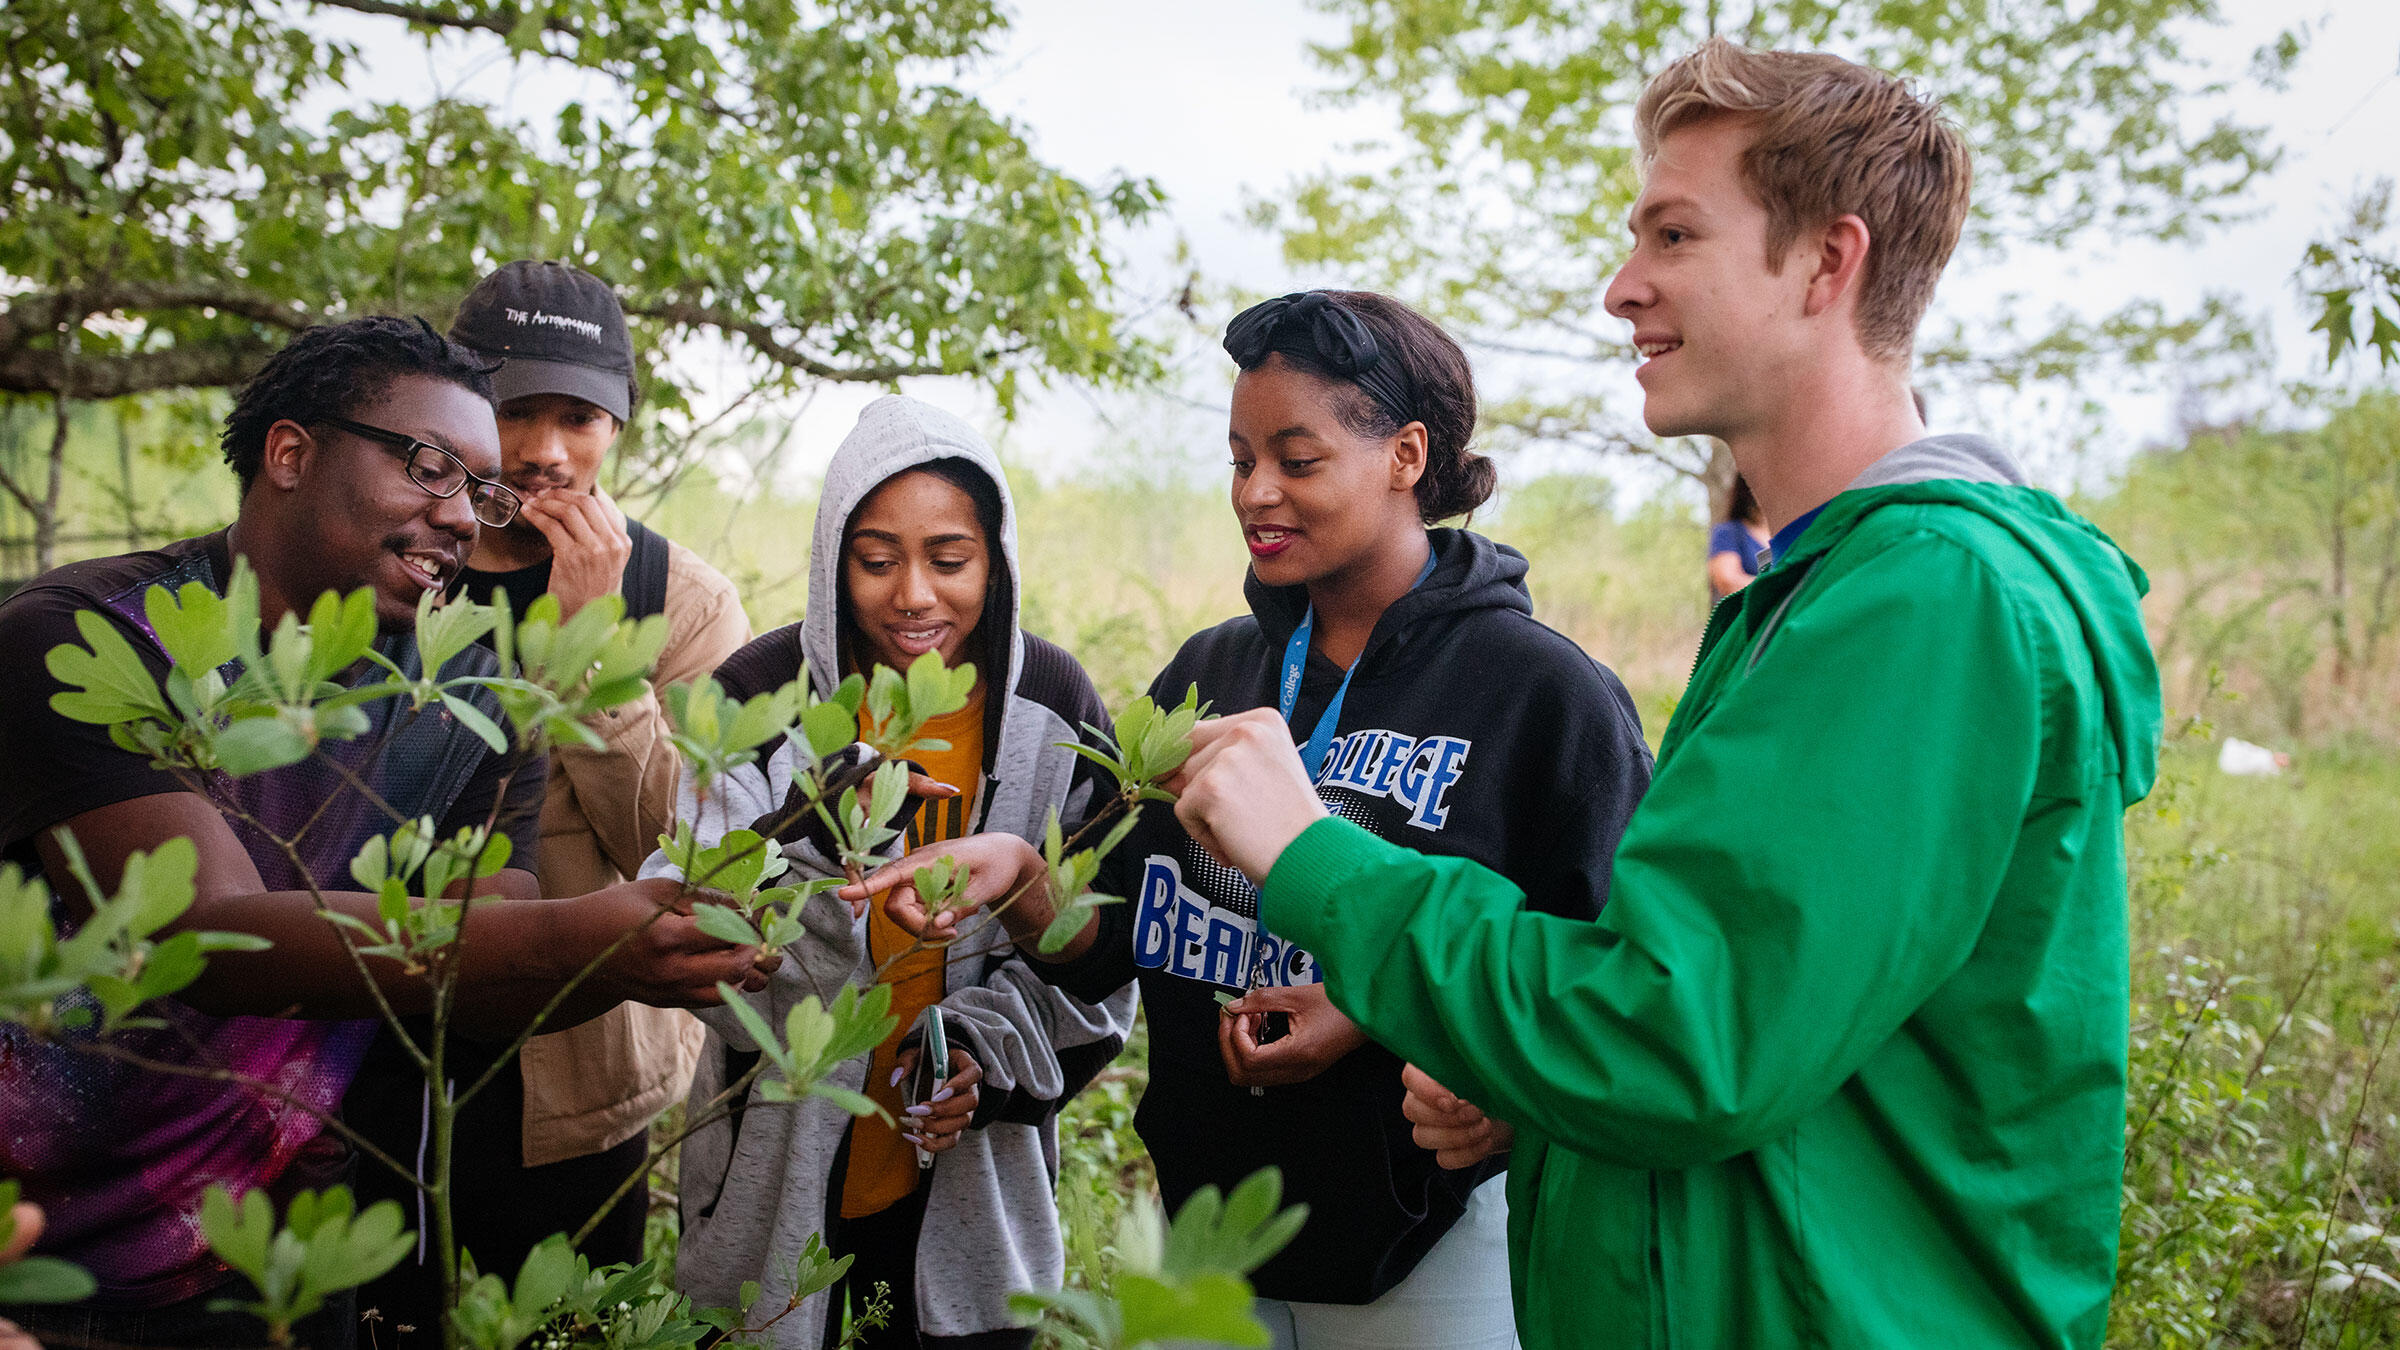 Students from Rust College and University of Mississippi learn about Sassafras albidum, a native tree with a multiple benefits to wildlife. Mike Fernandez/Audubon